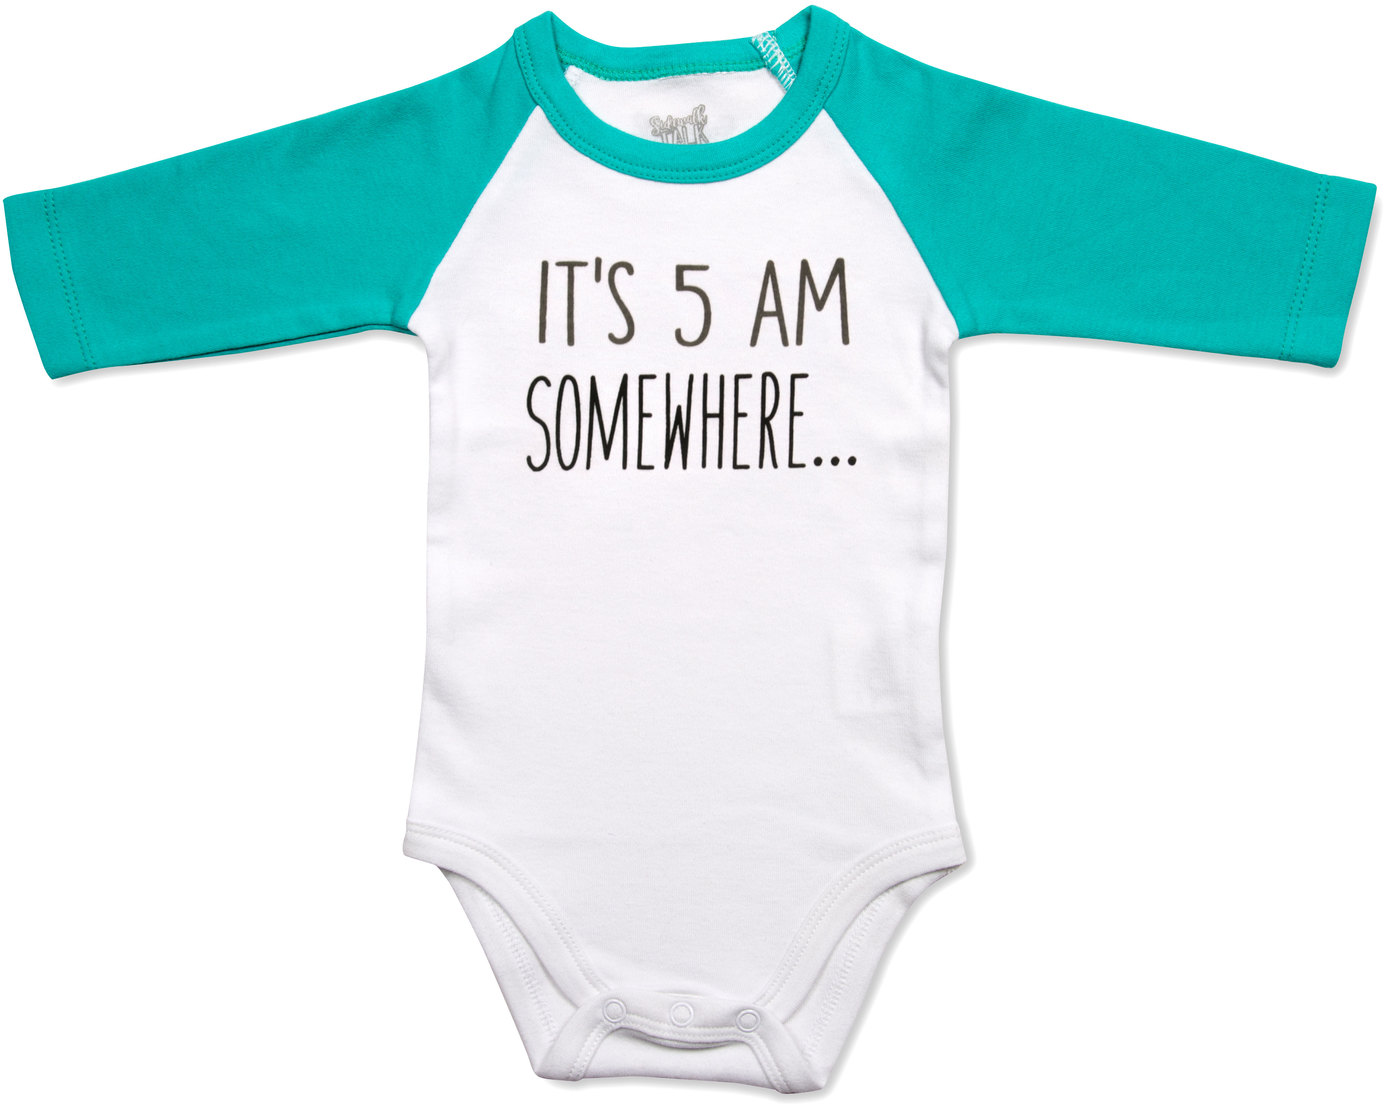 5 AM by Sidewalk Talk - 5 AM - 6-12 Months 3/4 Length Teal Sleeve Onesie